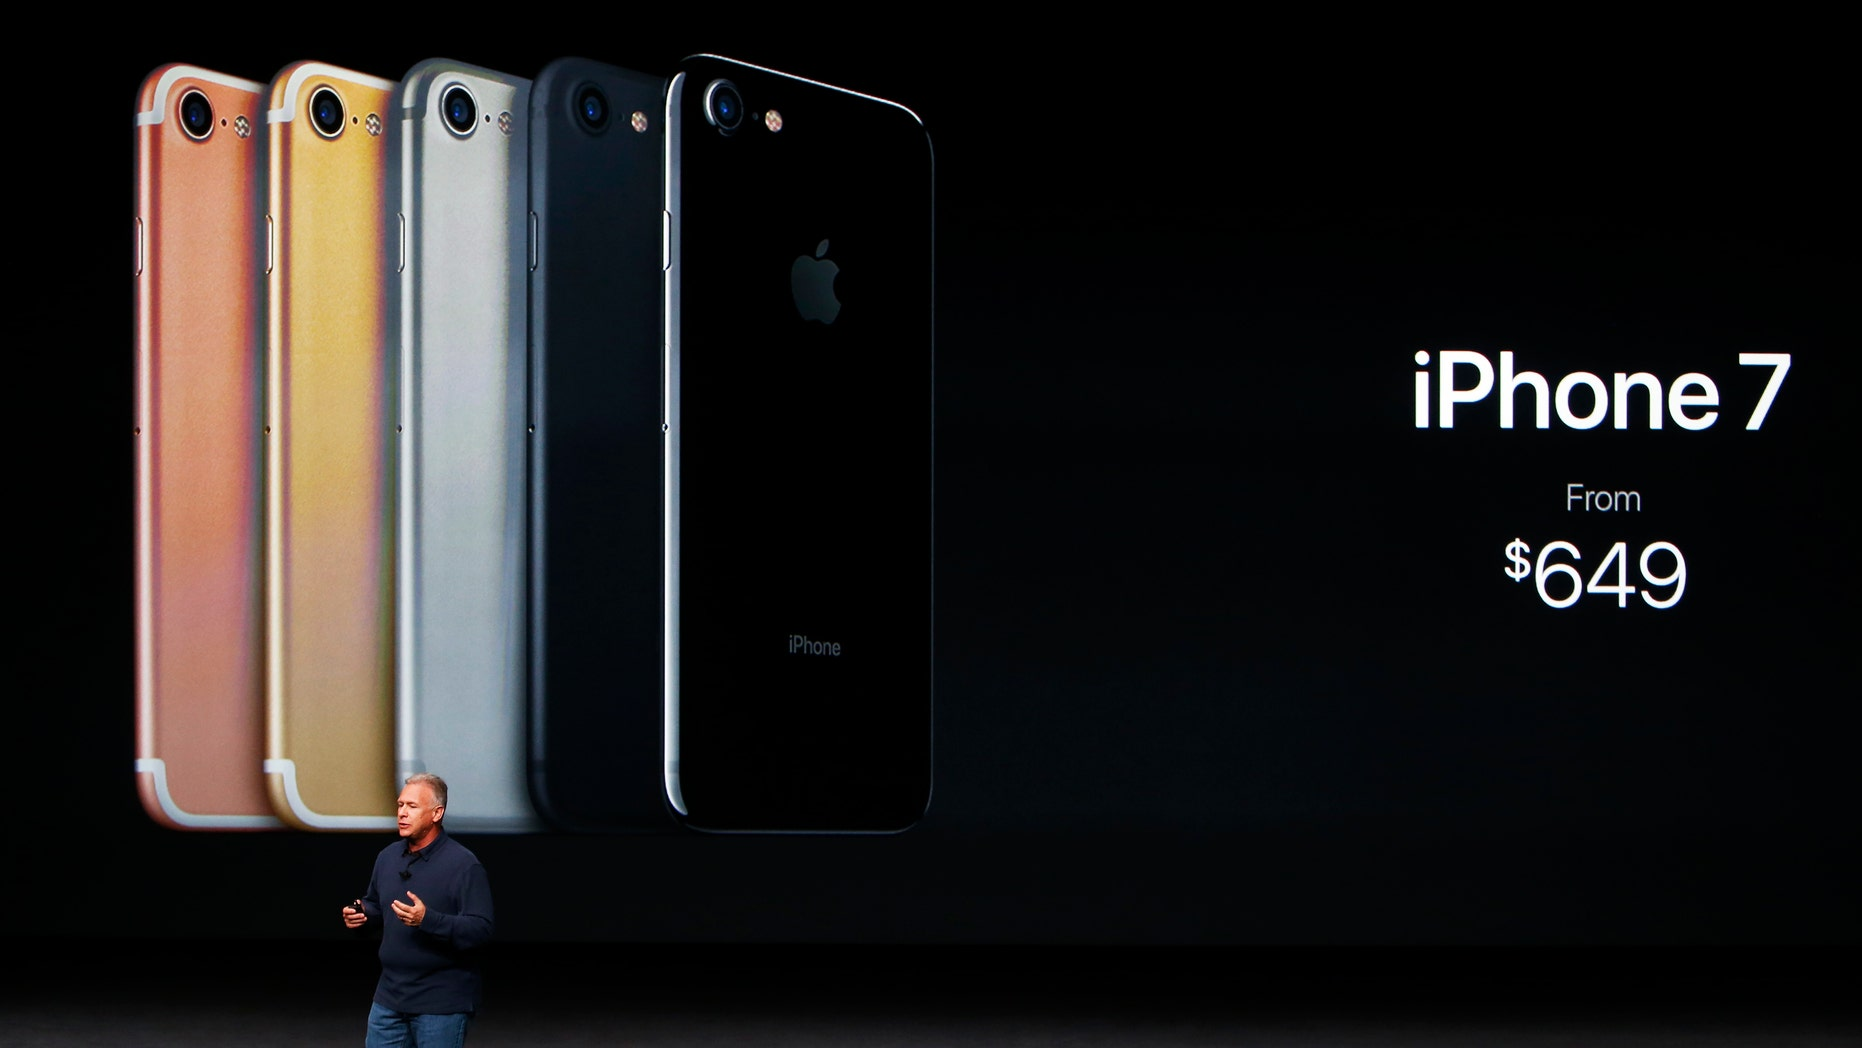 Phil Schiller, Senior Vice President of Worldwide Marketing at Apple Inc, discusses the iPhone 7 during an Apple media event in San Francisco, California, U.S. September 7, 2016.